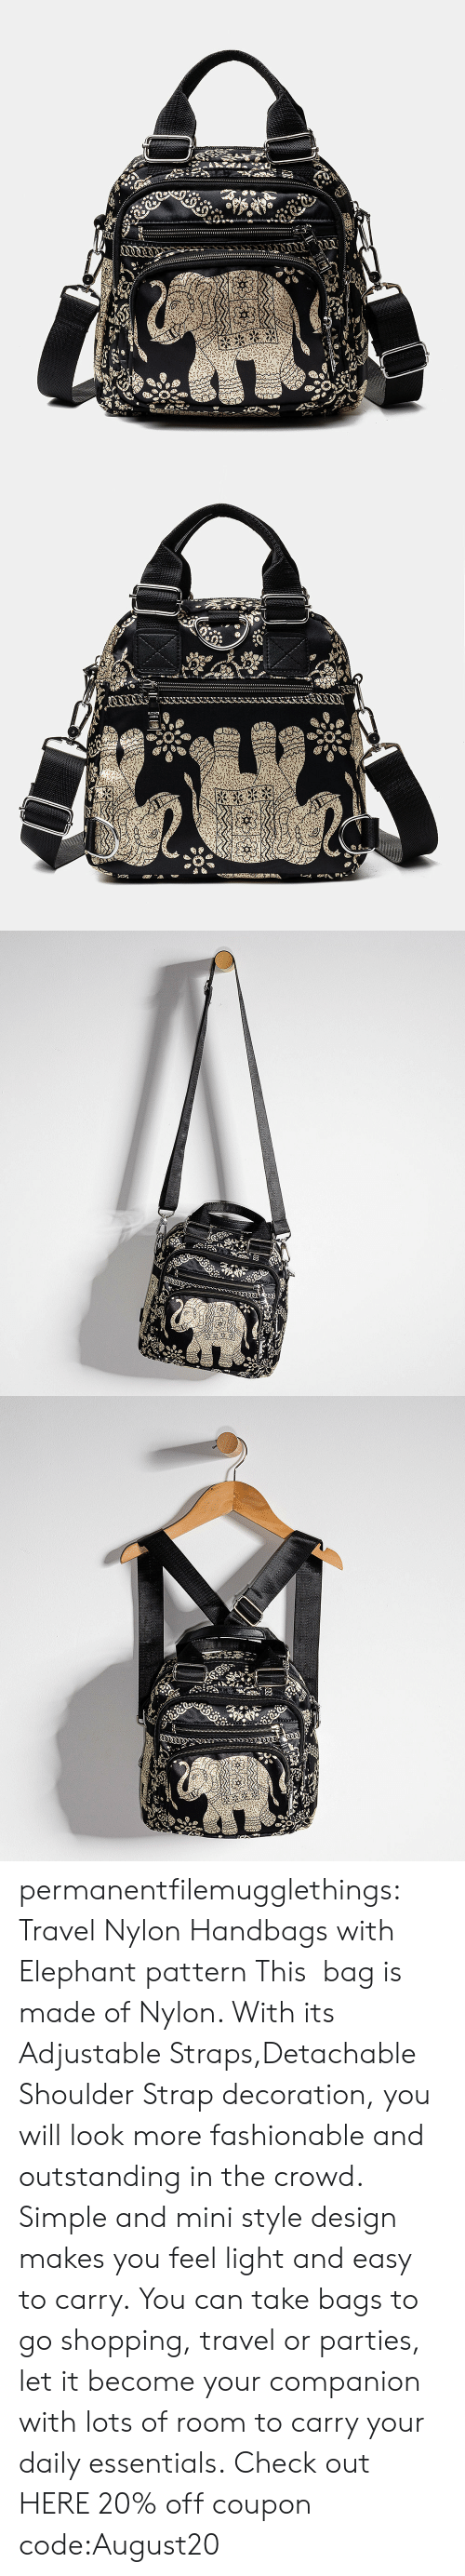 Decoration: permanentfilemugglethings: Travel Nylon Handbags with Elephant pattern This bag is made of Nylon. With its Adjustable Straps,Detachable Shoulder Strap decoration, you will look more fashionable and outstanding in the crowd. Simple and mini style design makes you feel light and easy to carry. You can take bags to go shopping, travel or parties, let it become your companion with lots of room to carry your daily essentials. Check out HERE 20% off coupon code:August20